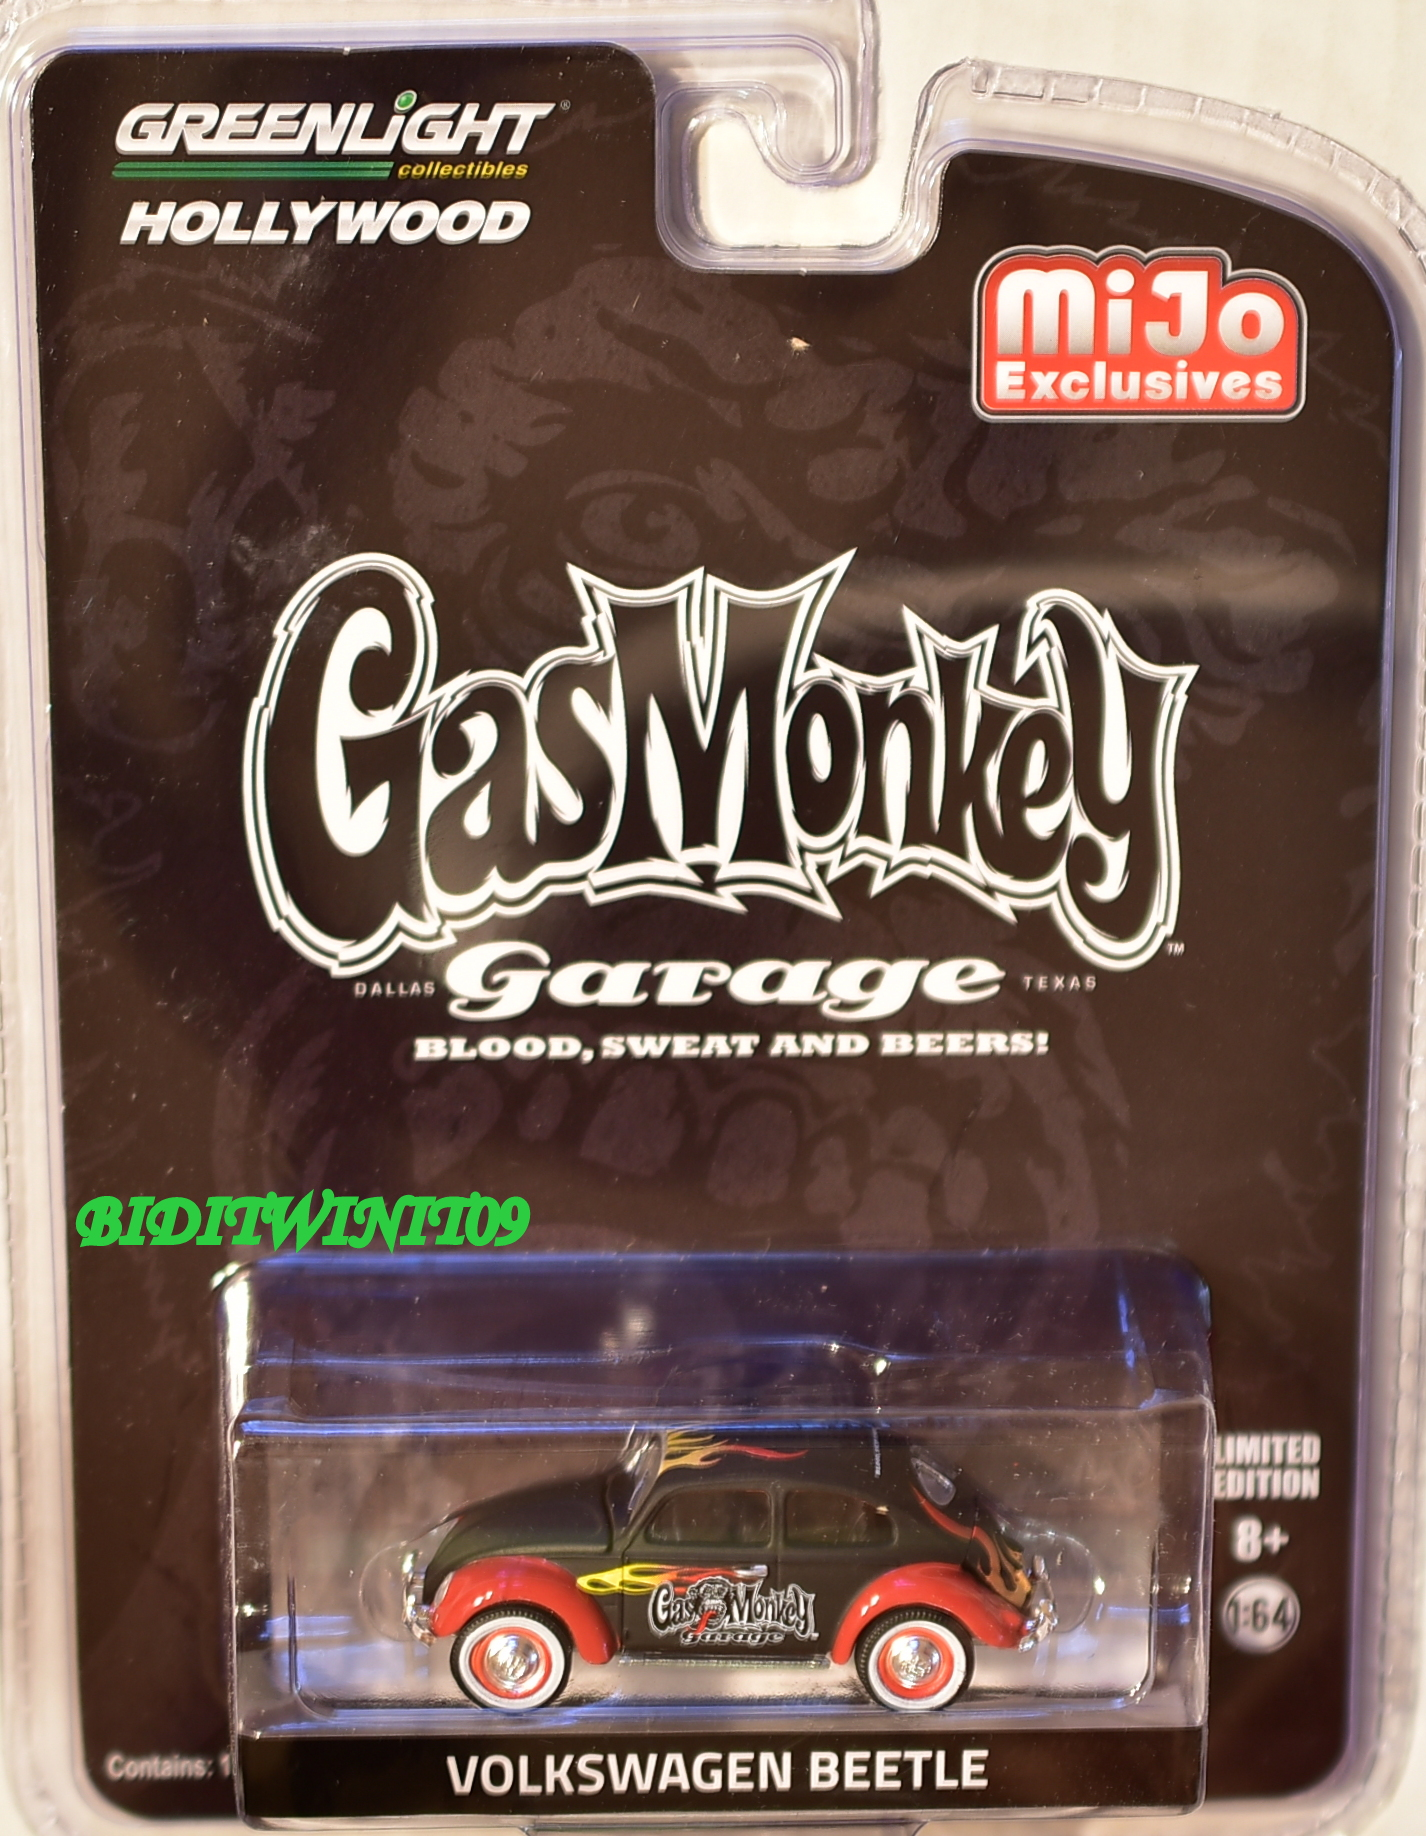 2017 GREENLIGHT GASMONKEY GARAGE VOLKSWAGEN BEETLE